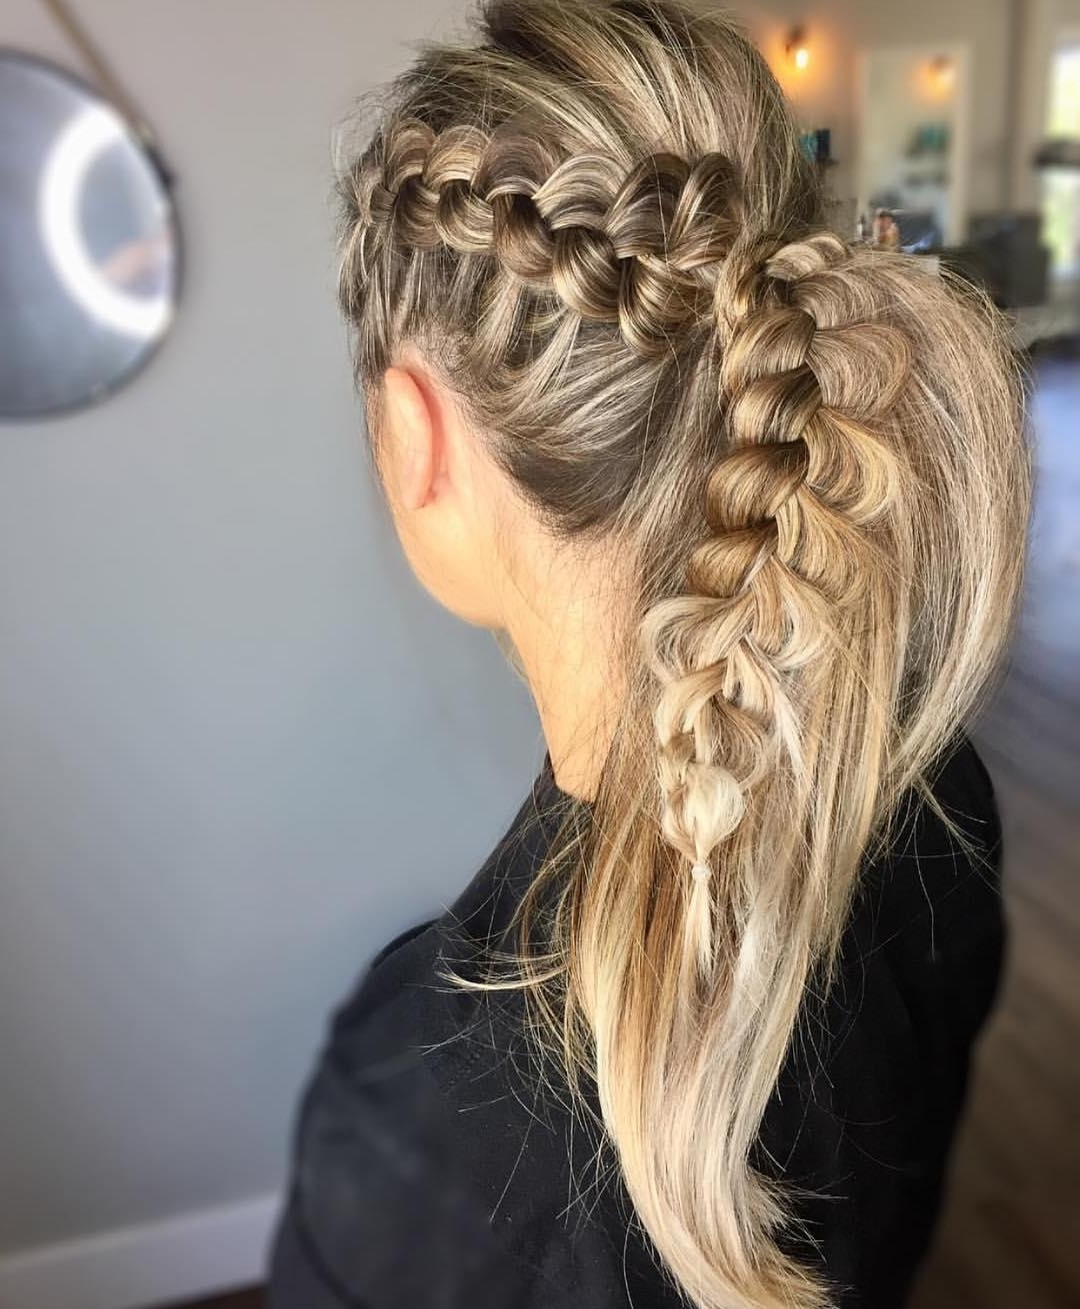 10 Ultra Ponytail Braided Hairstyles For Long Hair; Parties! 2018 Regarding Well Known Curly Pony Hairstyles For Ultra Long Hair (View 9 of 20)